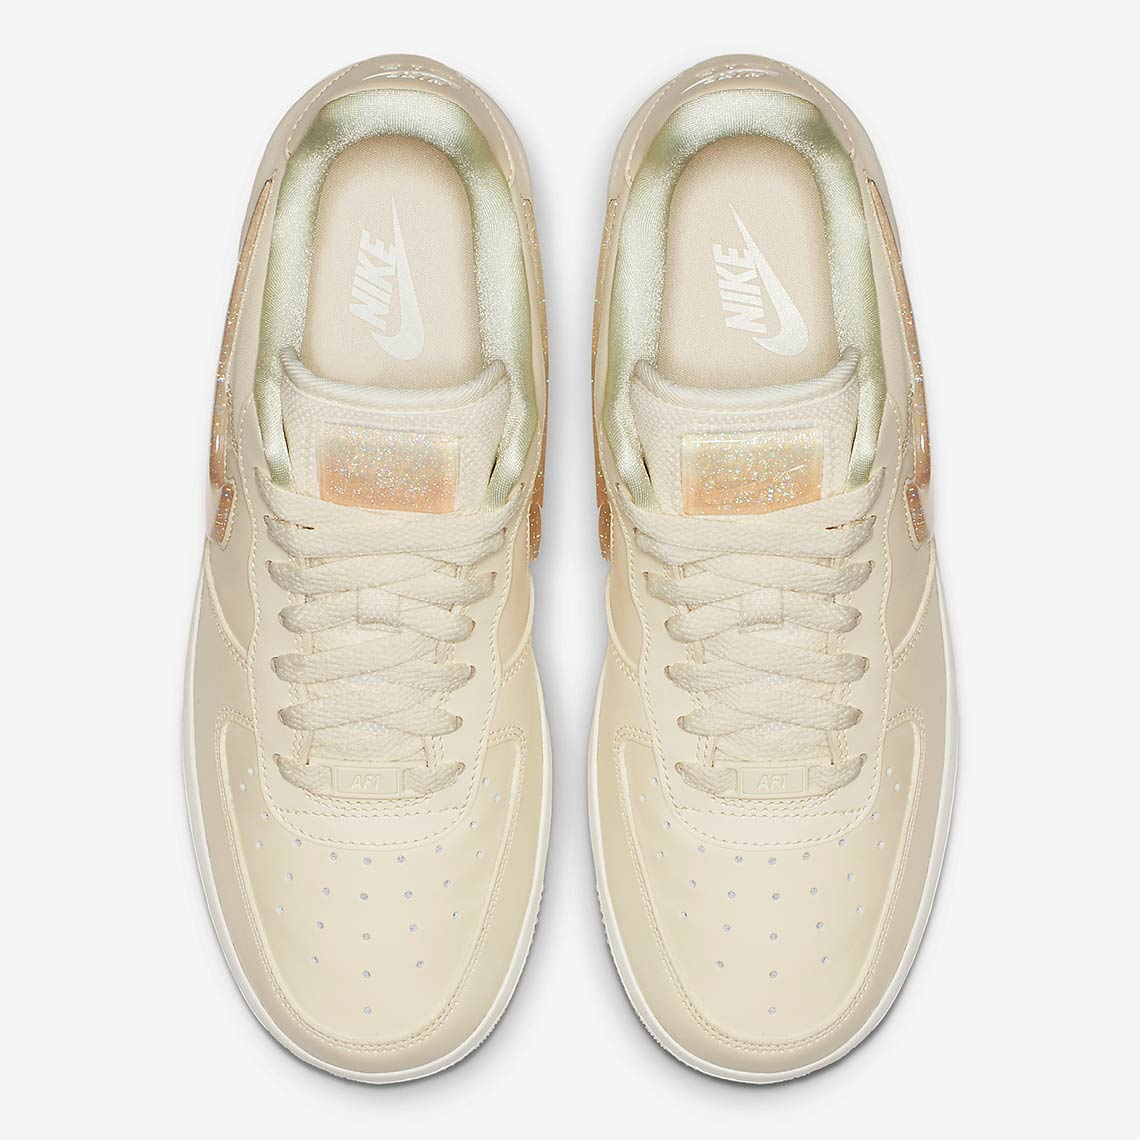 outlet store 1b4c6 406af Nike Air Force 1 Womens Jelly Swoosh AH6827-100 Info   SneakerNews.com